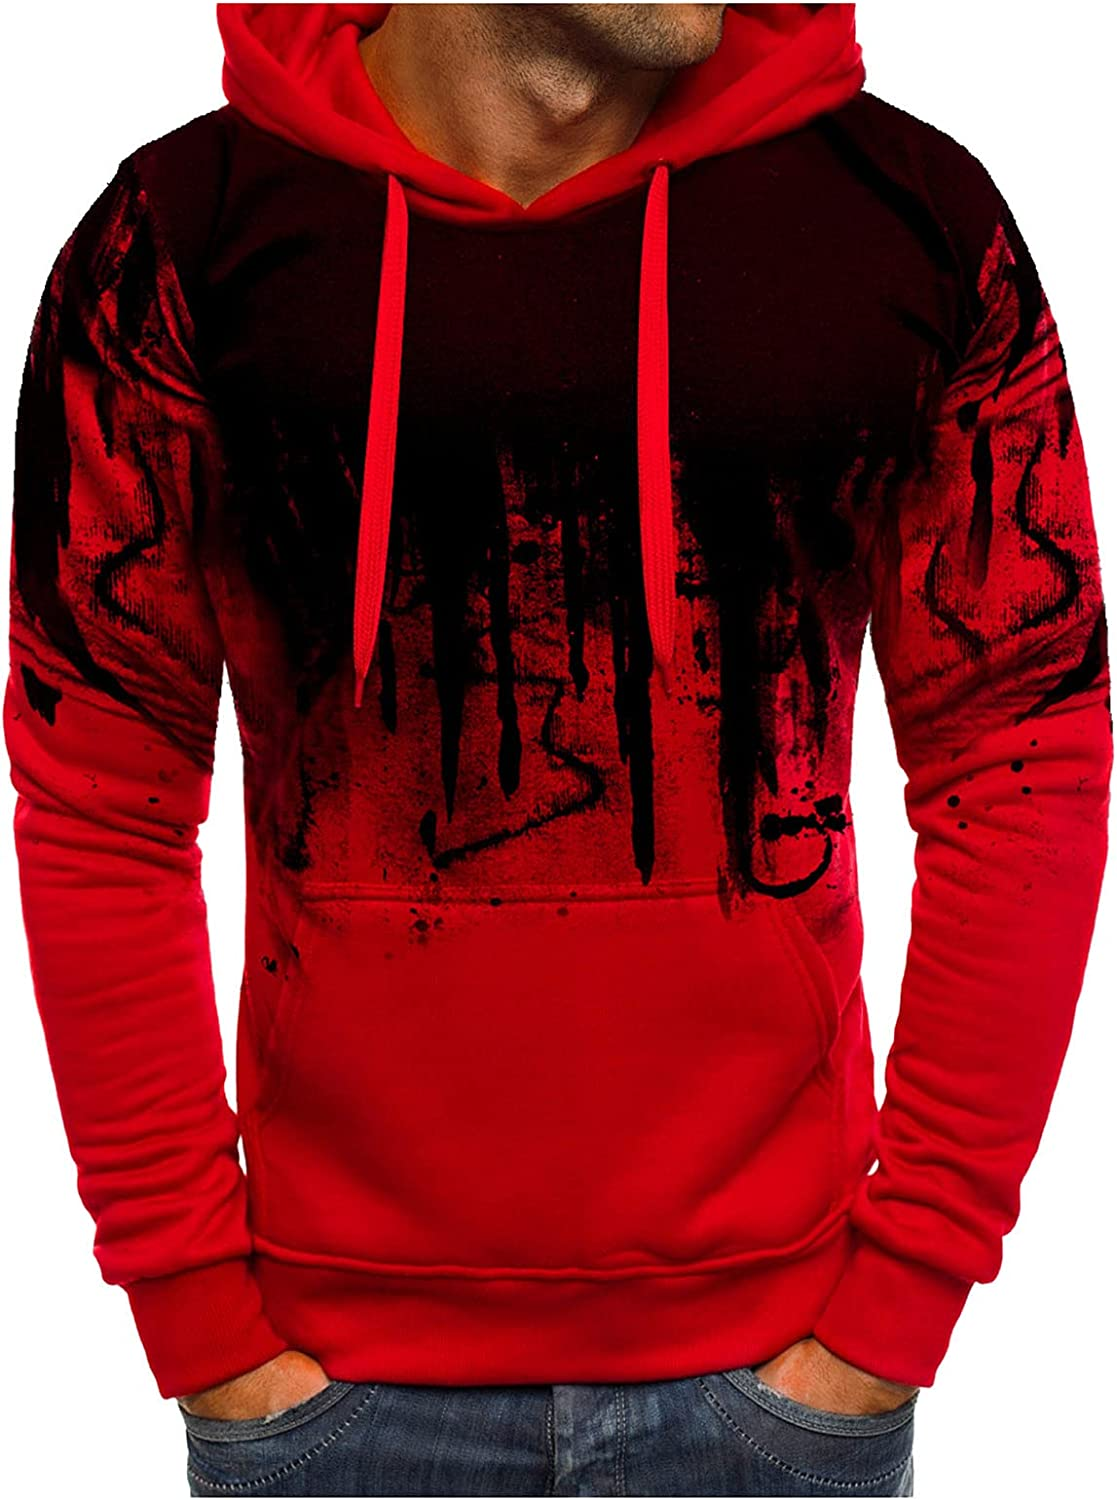 Burband Mens Fashion Hoodie Pullover Sweatshirts Big and Tall 3D Digital Printed Graphic Tees Athletic Workout Muscle Tops